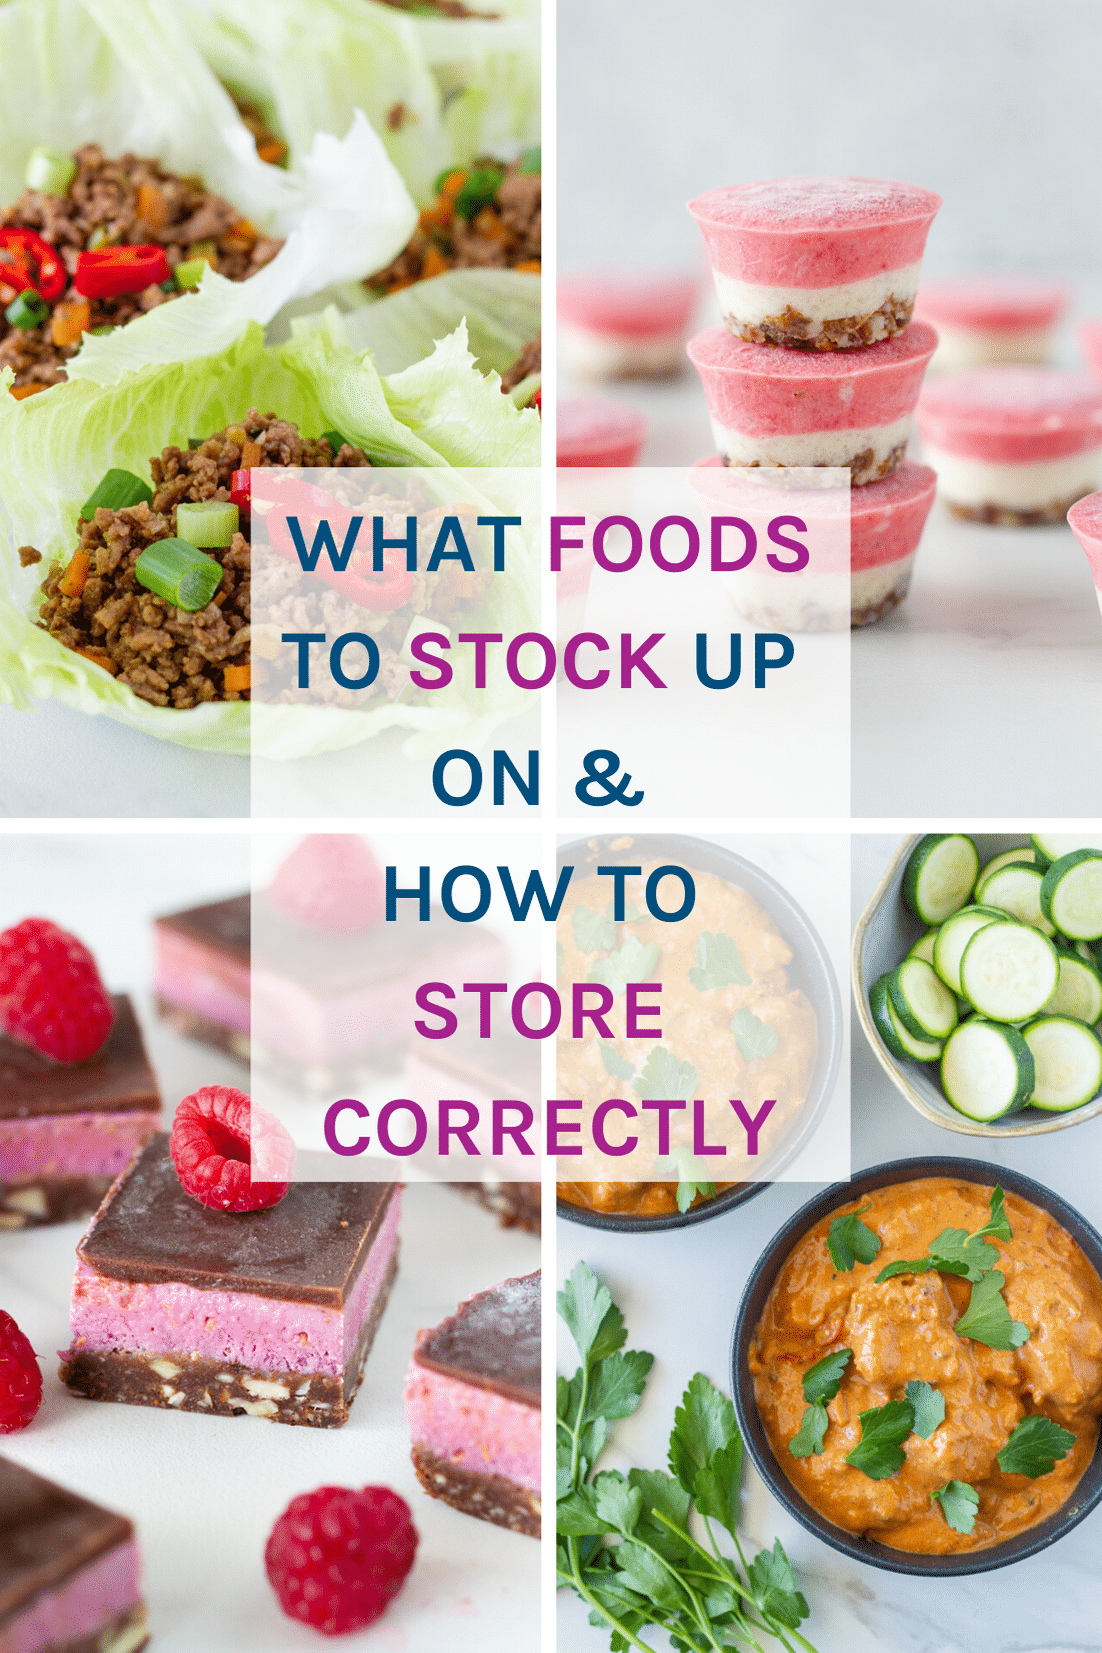 What foods to stock up on and how to store correctly. This posts contains my tips to help with what foods to purchase in times of crisis, how to store them correctly and also provides options so you can continue to make all your favourite healthy recipes.